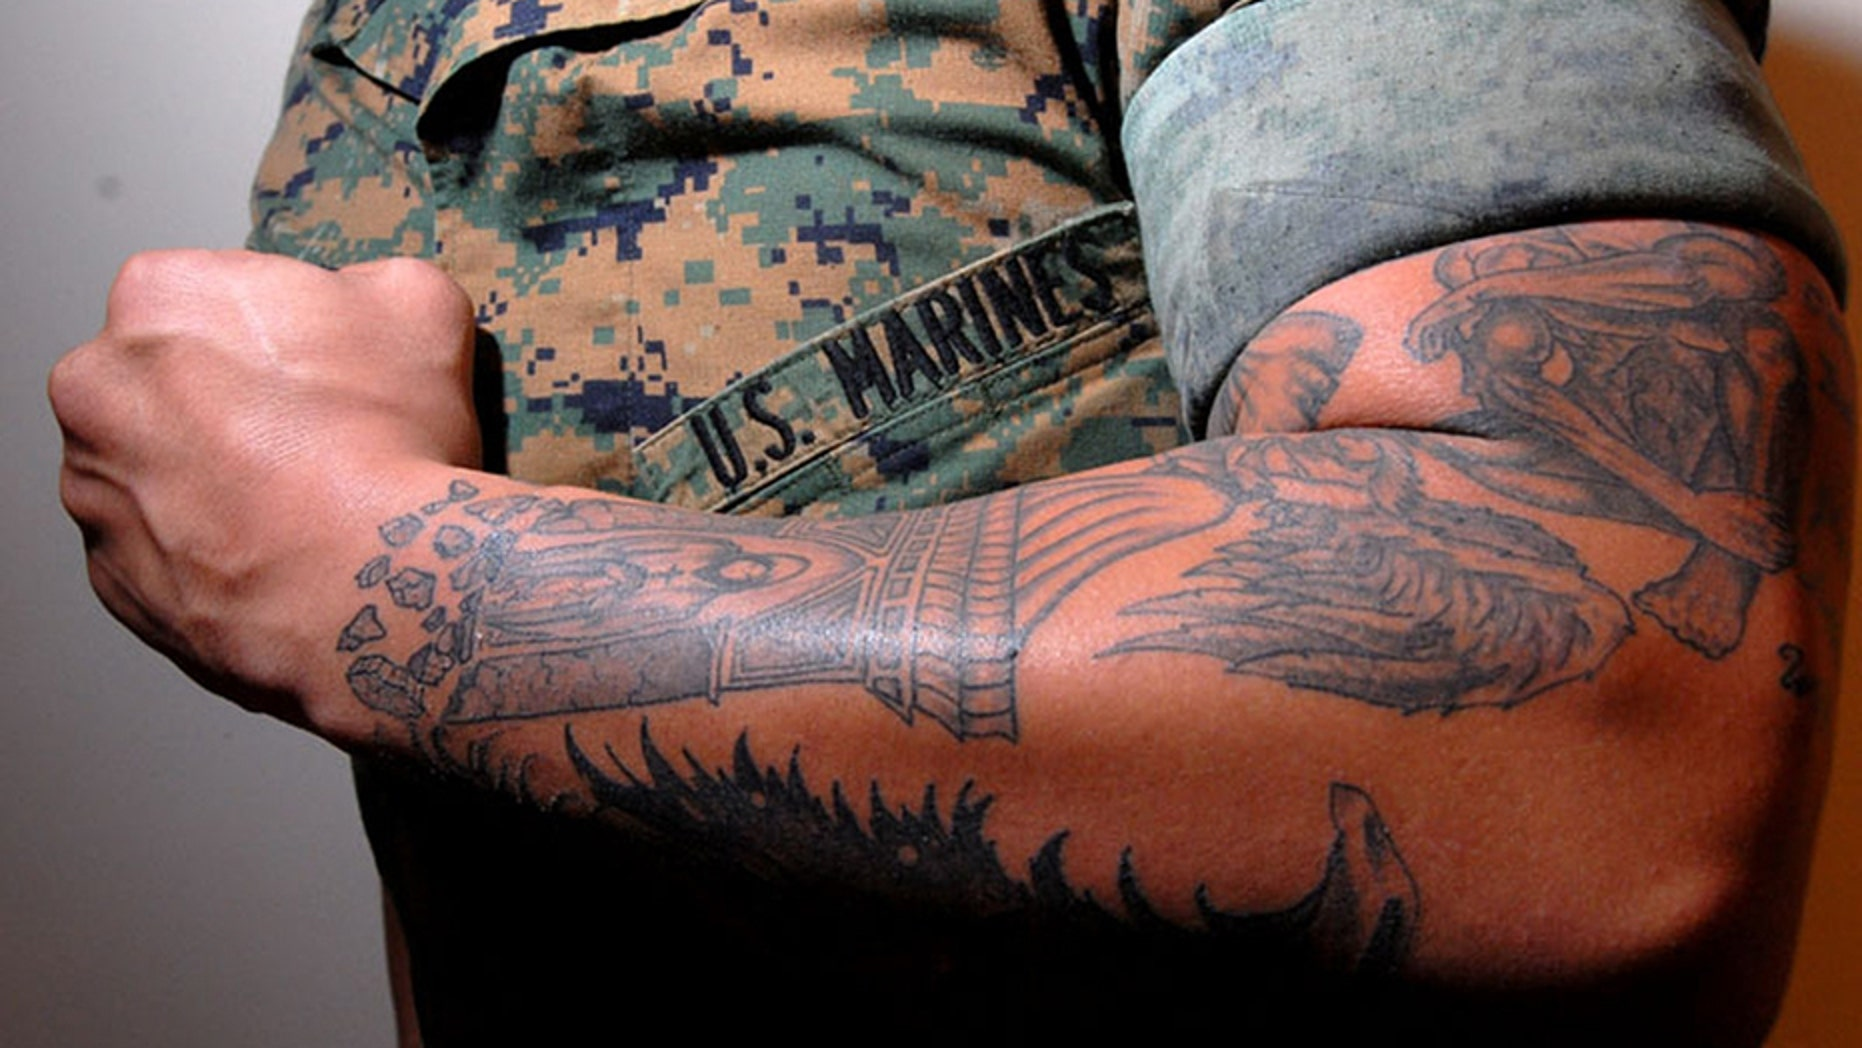 The Marines ease tattoo rules, the strictest in the military